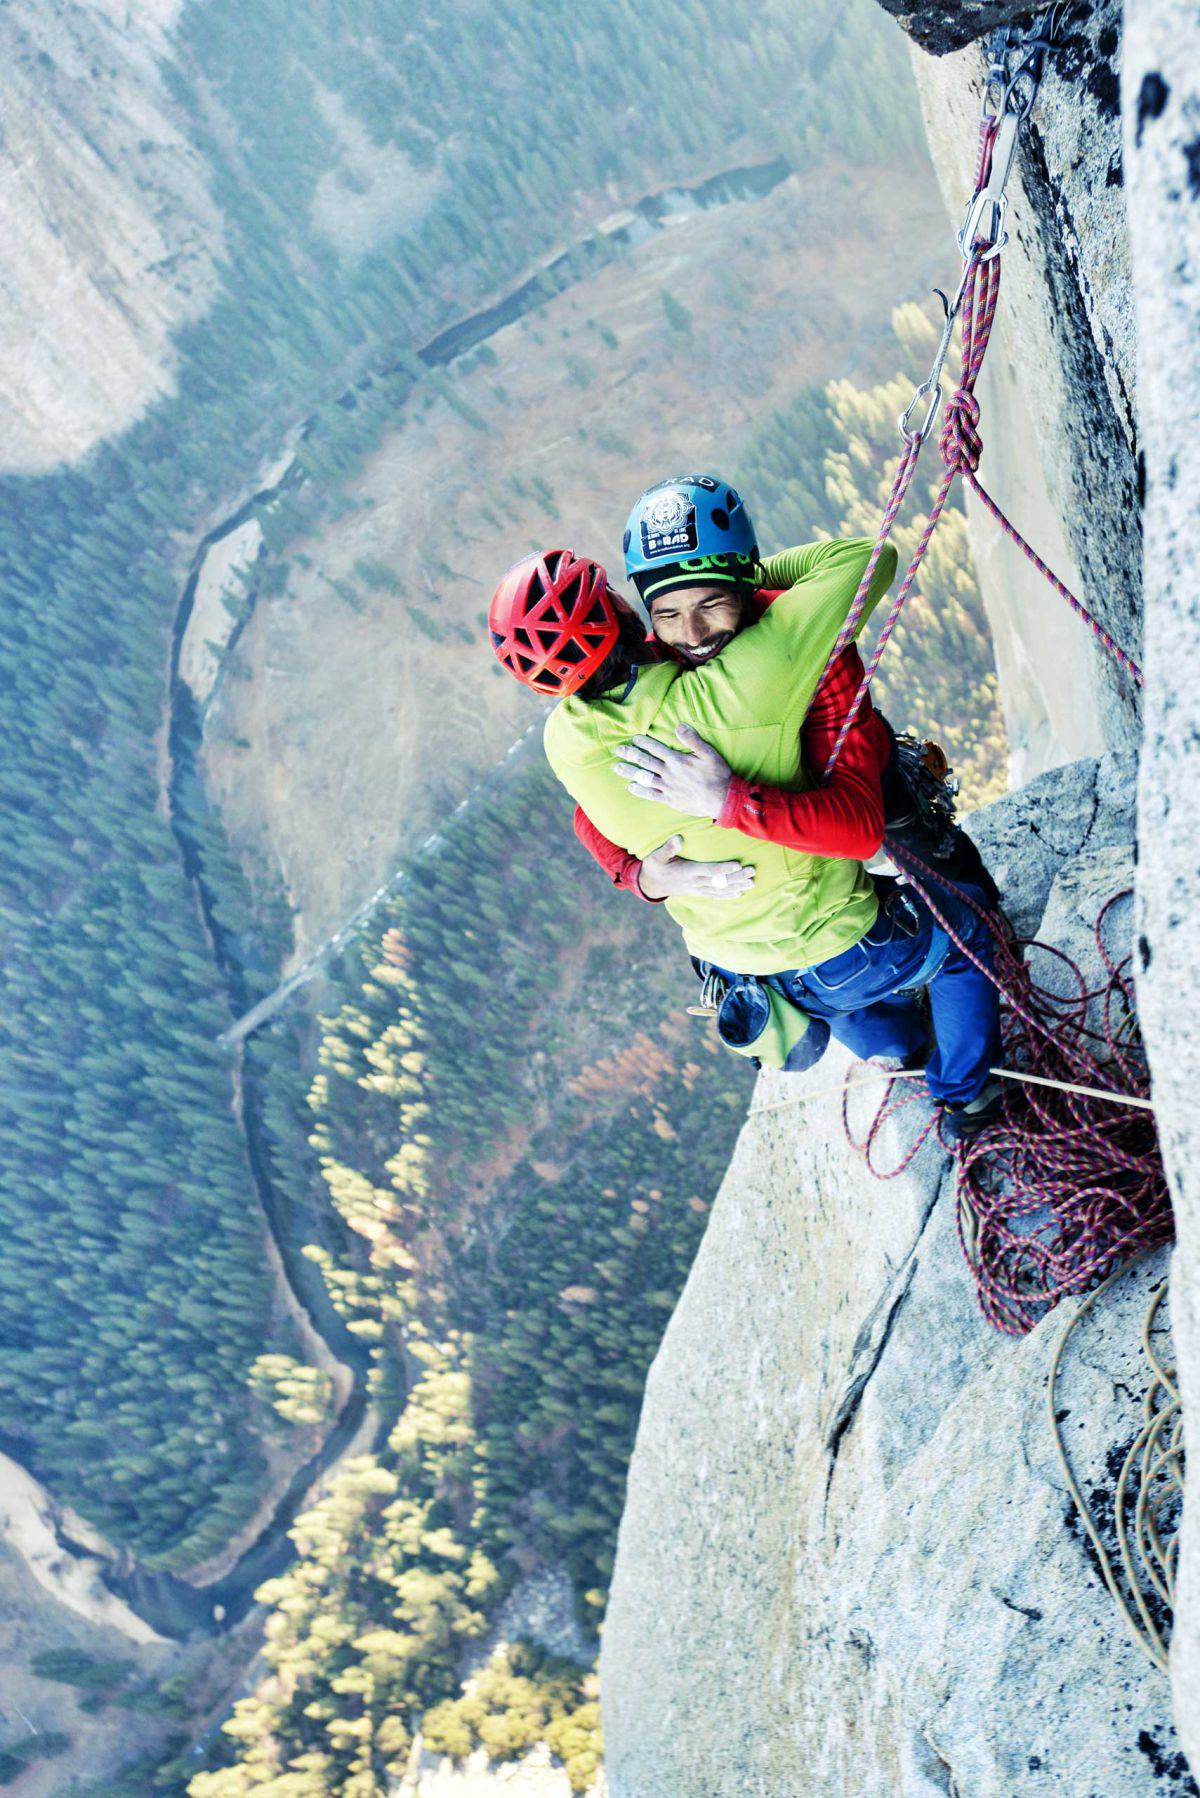 tommy caldwell kevin jorgeson capitan1 Free Climbers Complete Worlds Toughest Climb Up Yosemite Dawn Wall